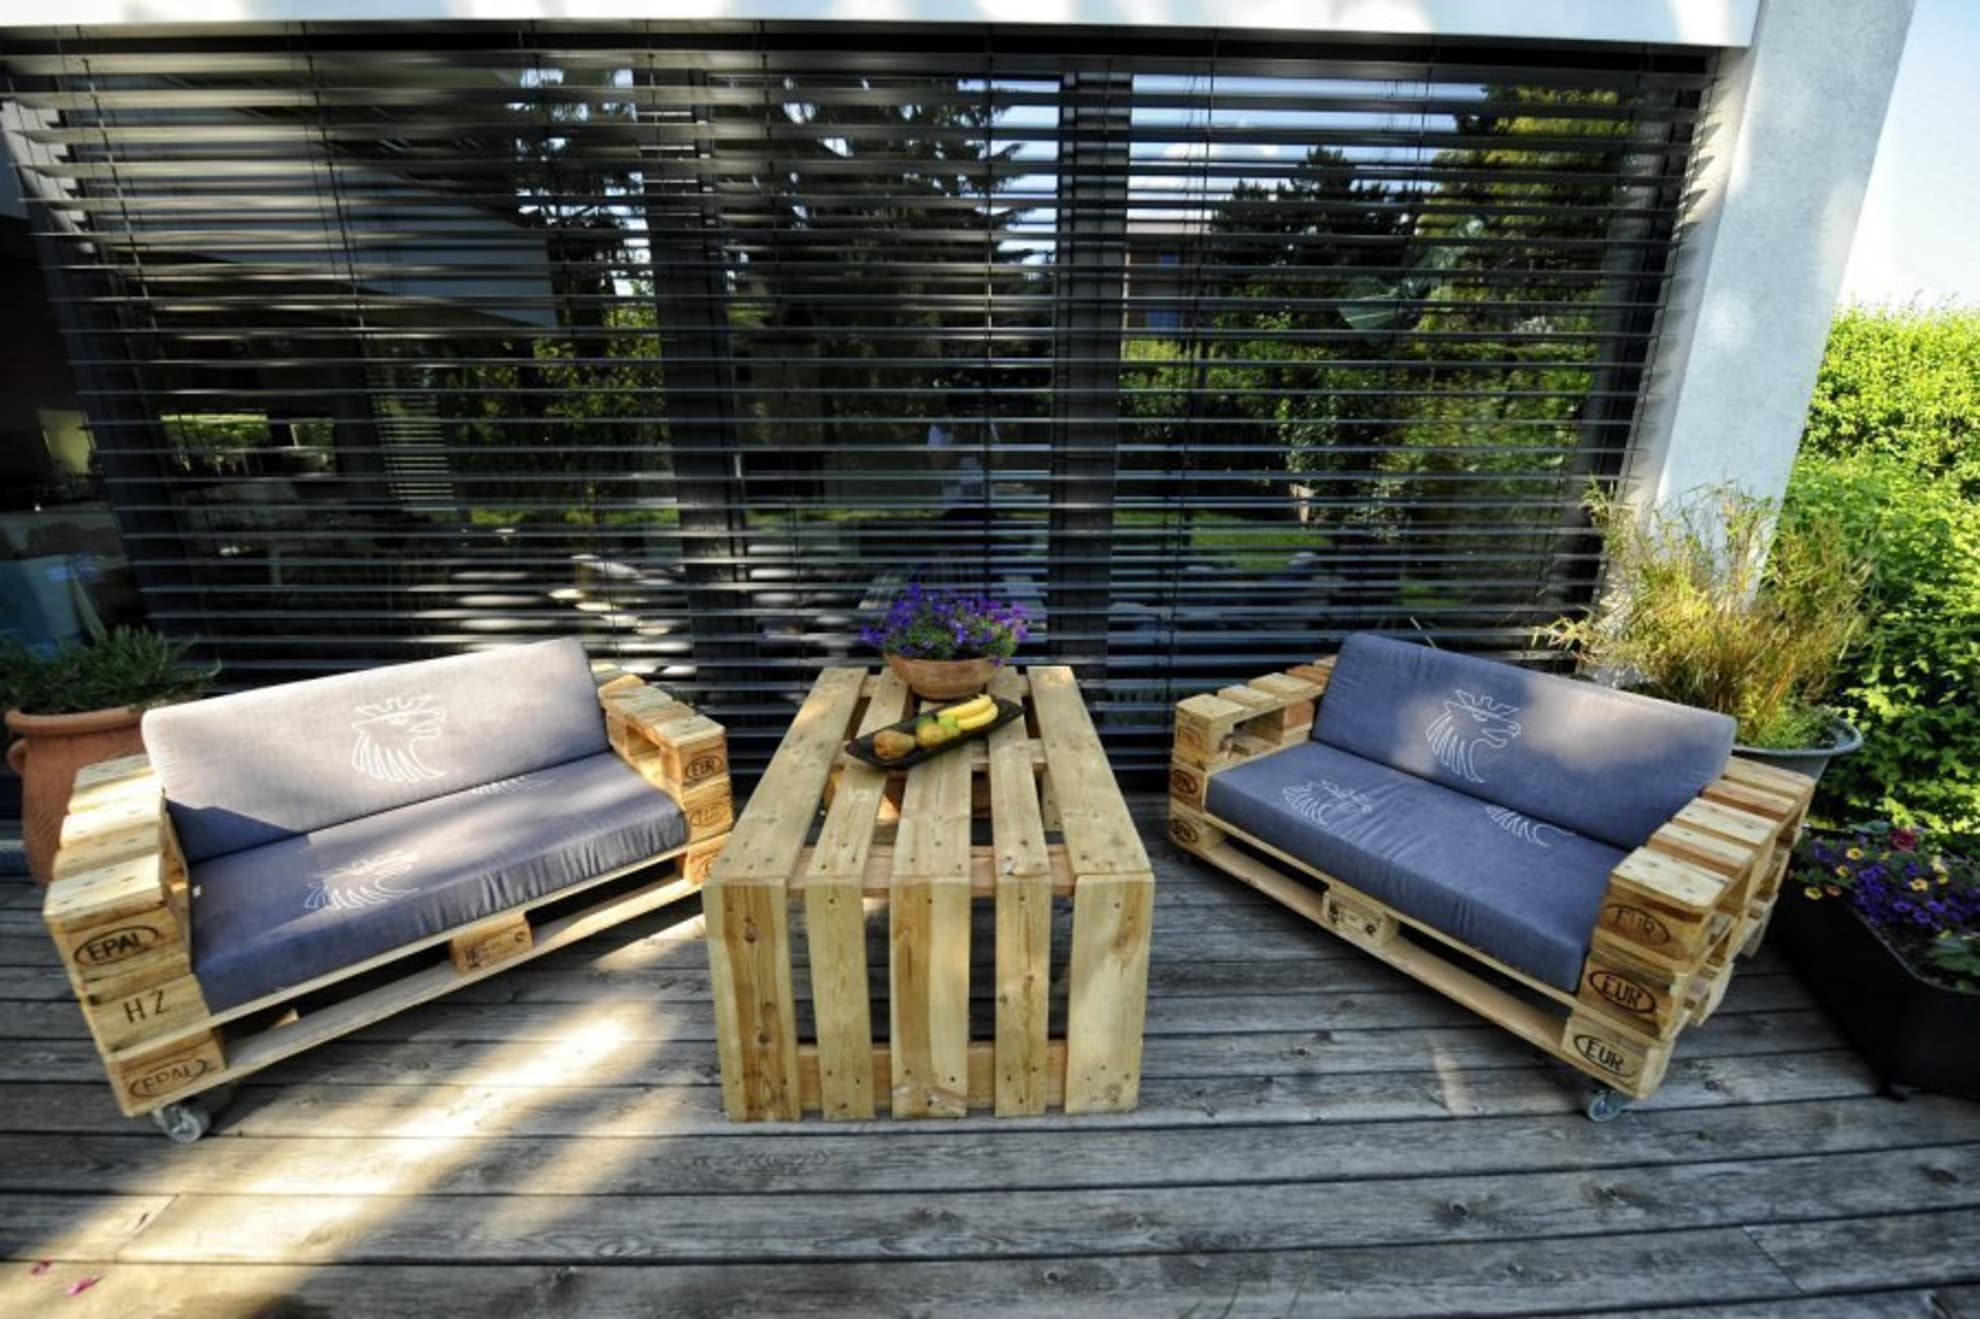 44 DIY wooden pallet ideas for you to copy (if you like woodworking!)